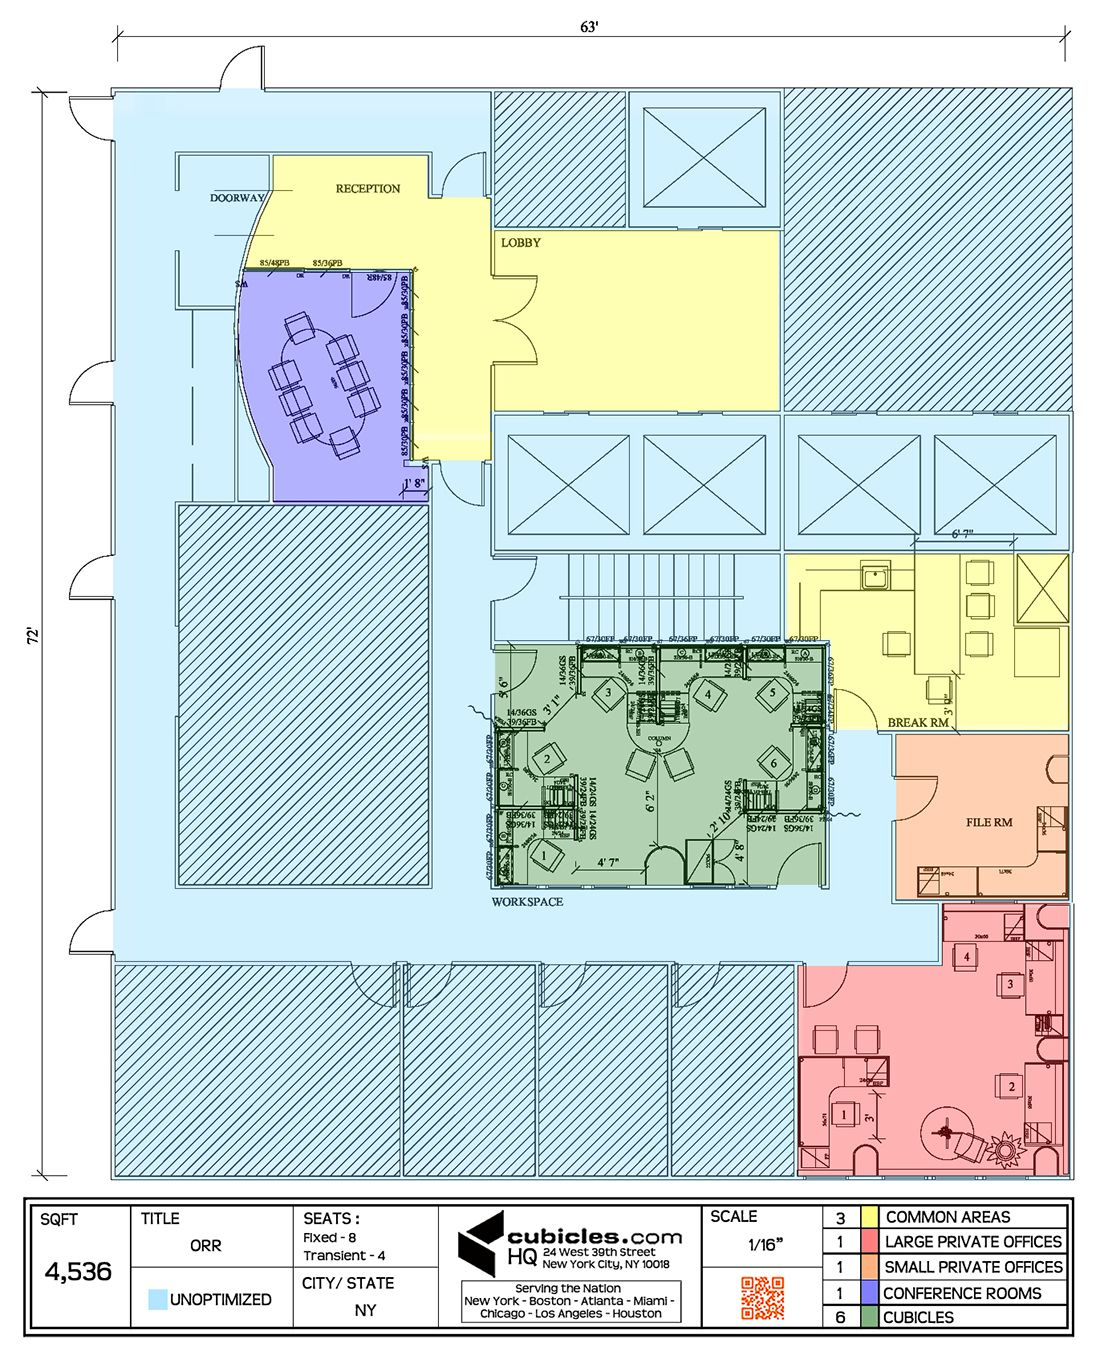 Office Layout Plan With 3 Common Areas Officelayout Office Space Planning Office Layout Plan Space Planning